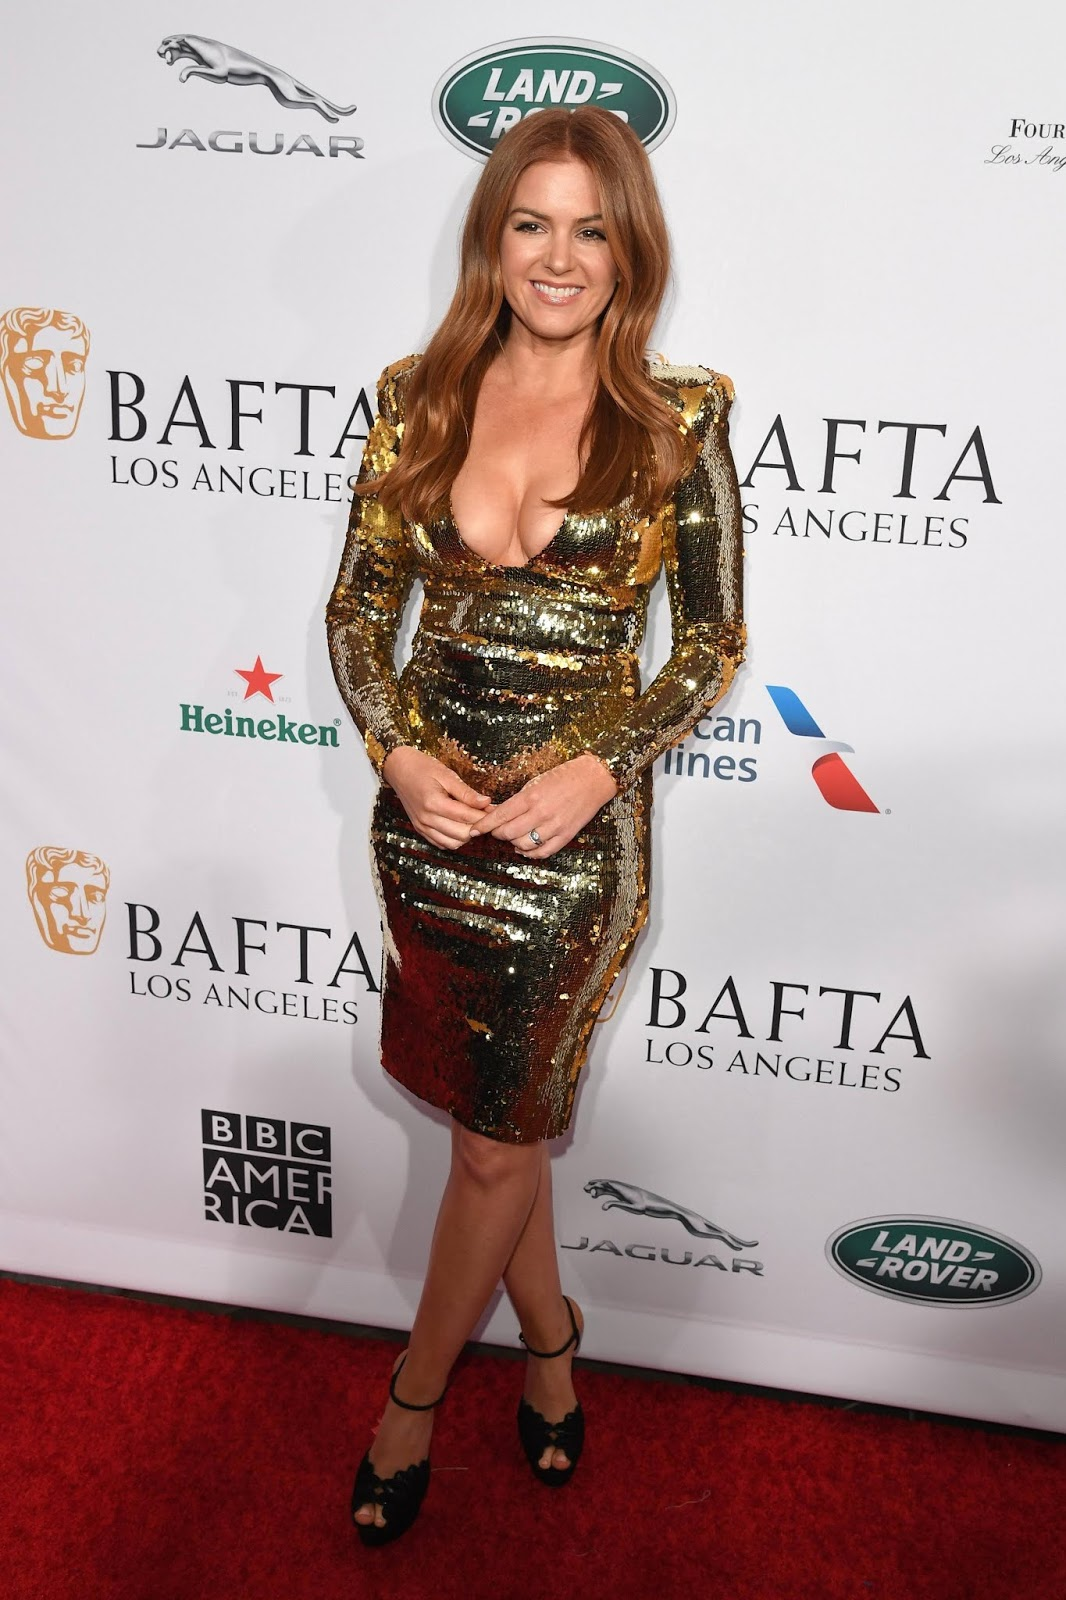 Isla Fisher Goes Back to Red Hair for BAFTA Tea Party After Rocking Blonde Wig